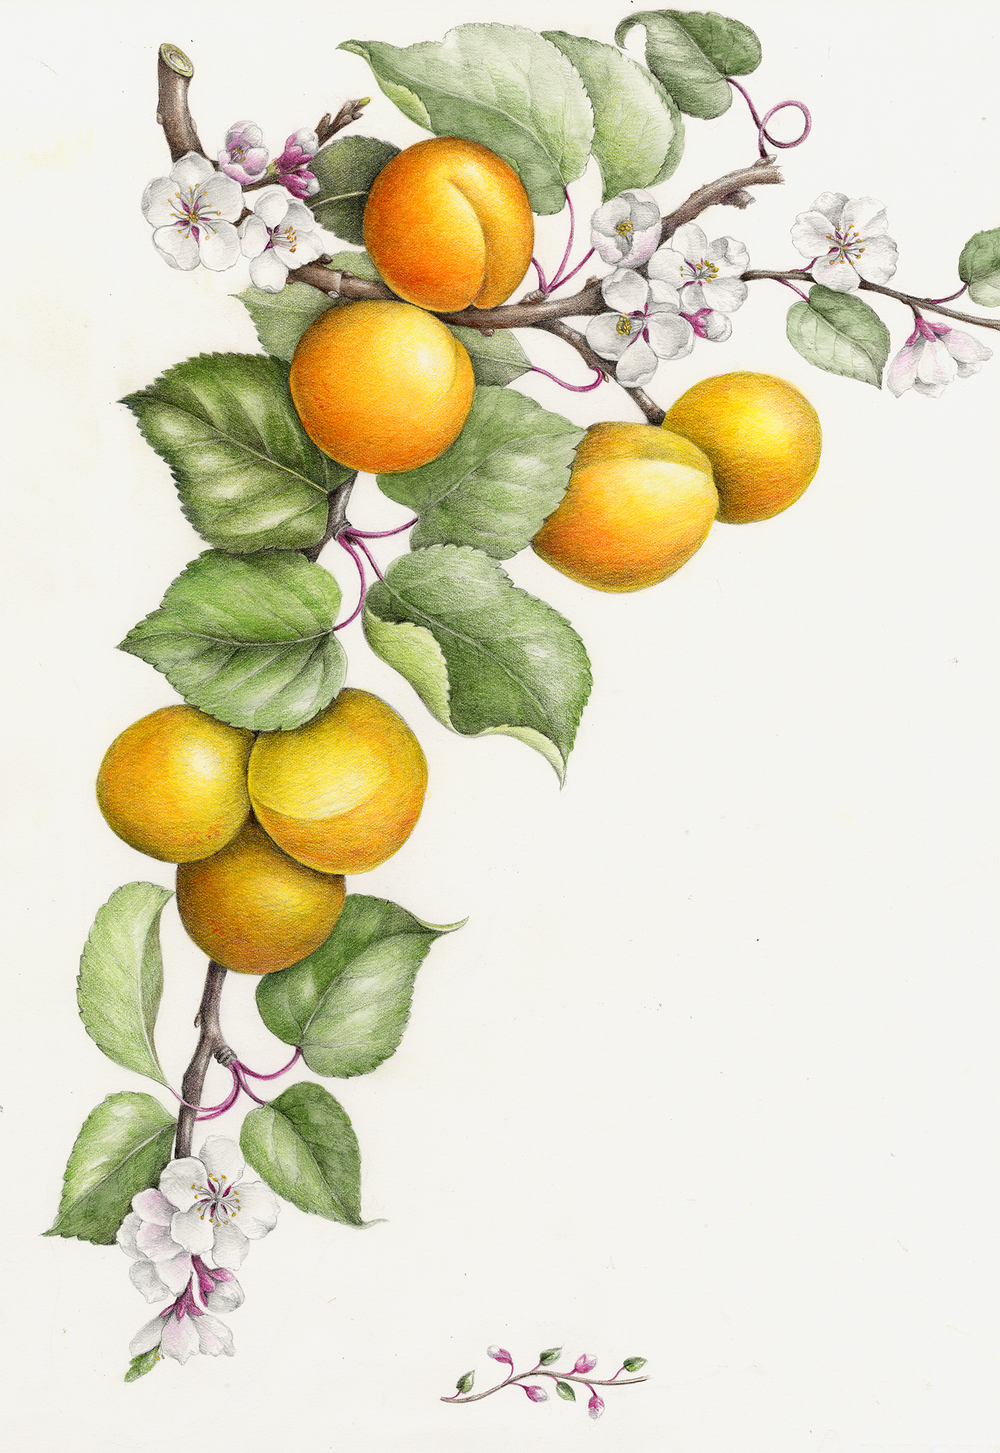 Fruits Vegetables Botanical Artist Illustrator Learn To Draw